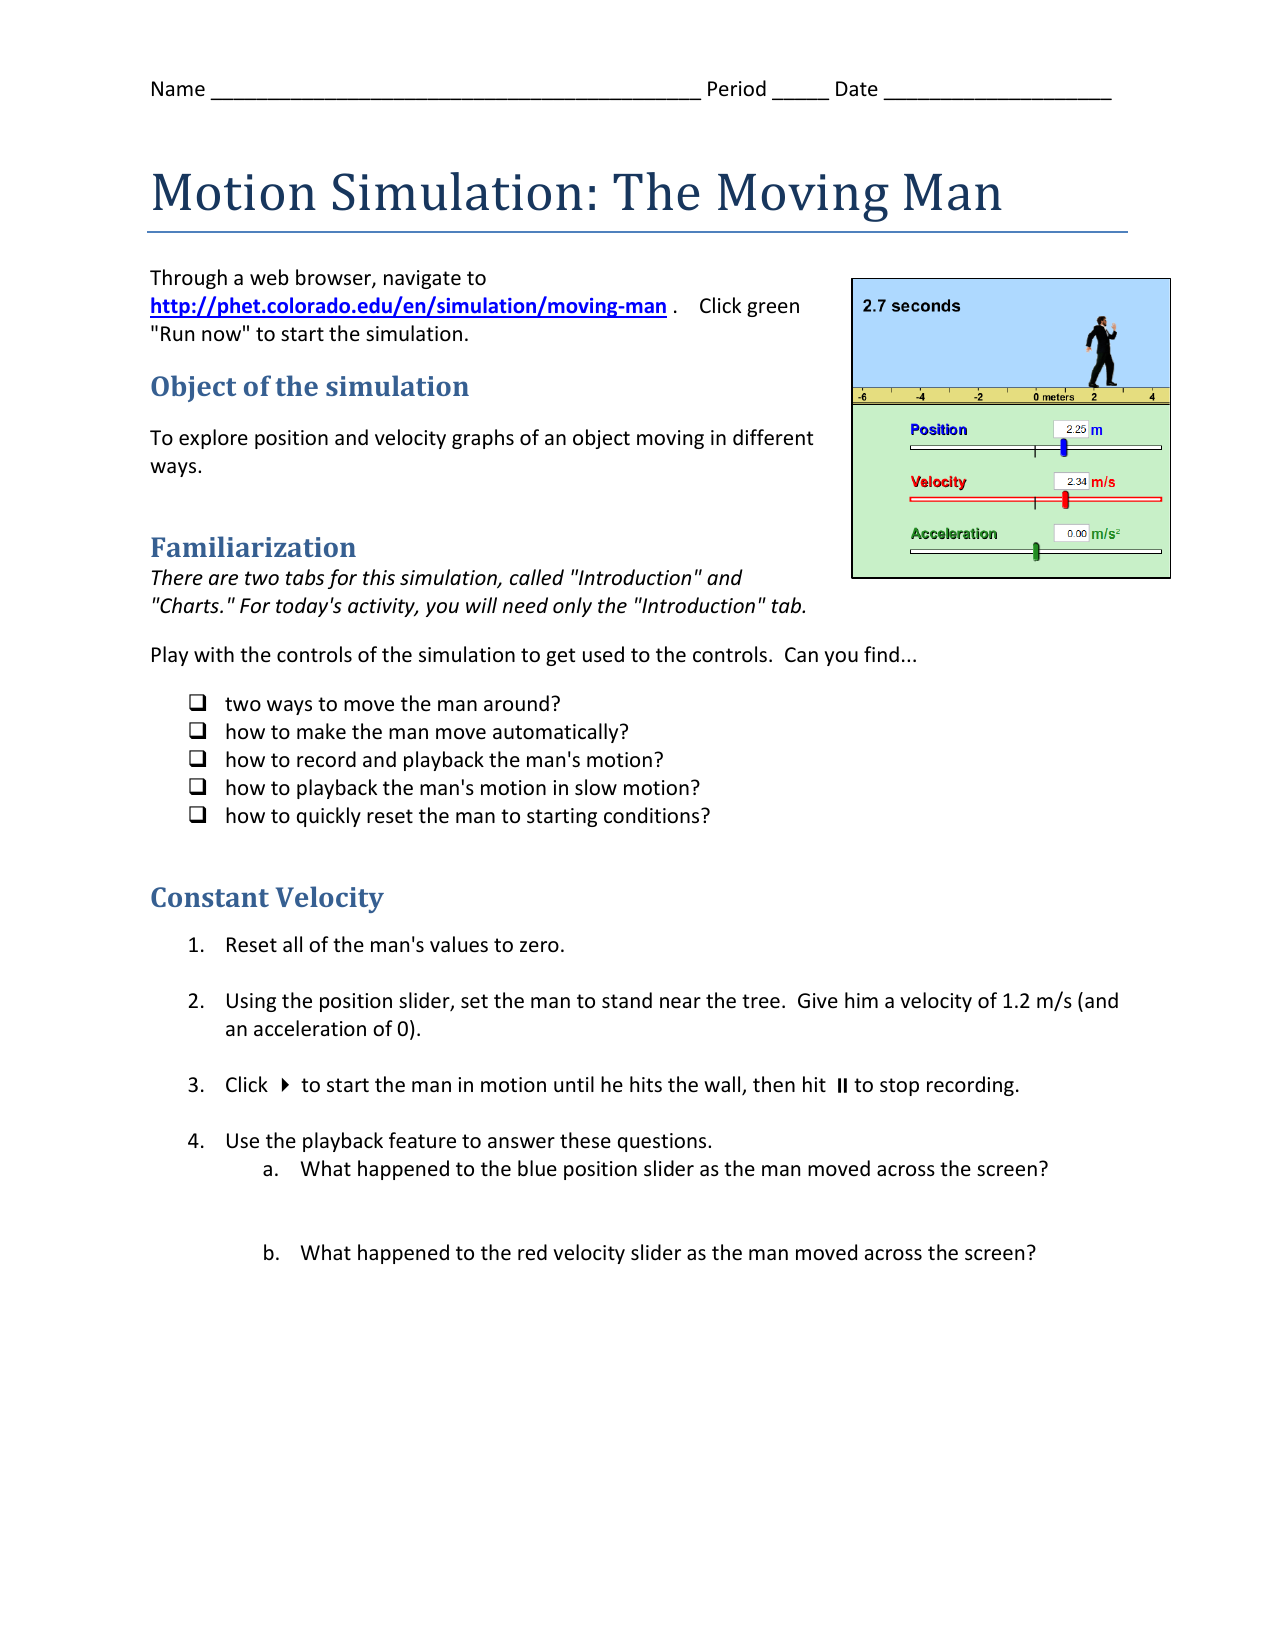 Moving Man Worksheet Answers - Nidecmege